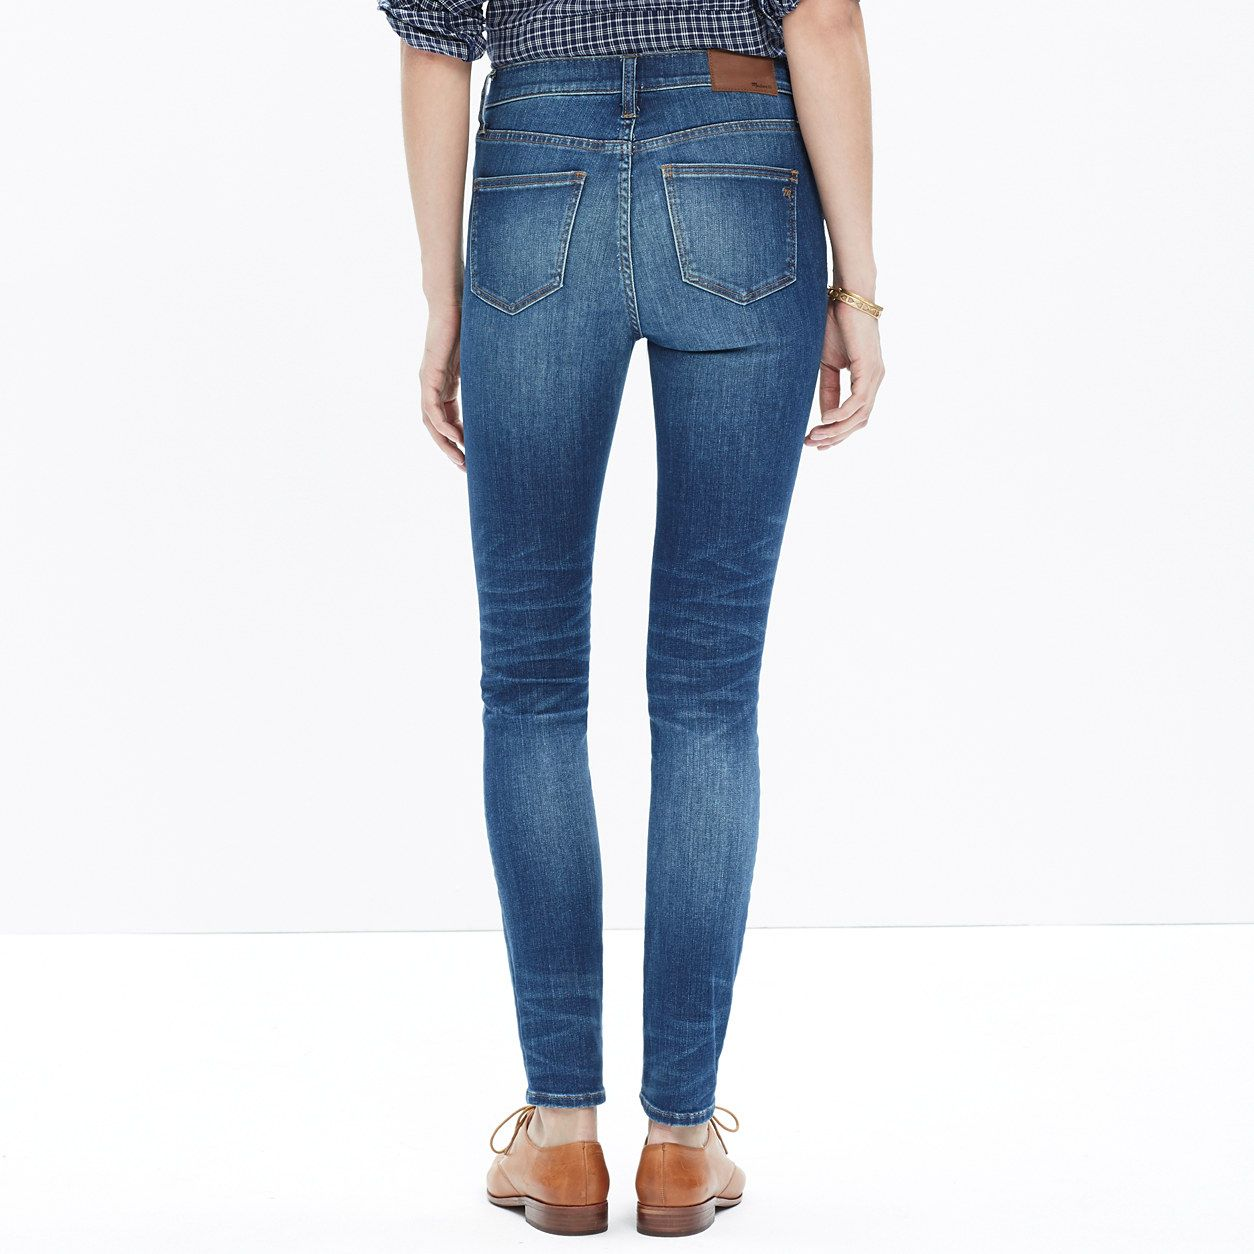 "9"" High Riser Skinny Skinny Jeans in Dayton Wash : our current favorites 